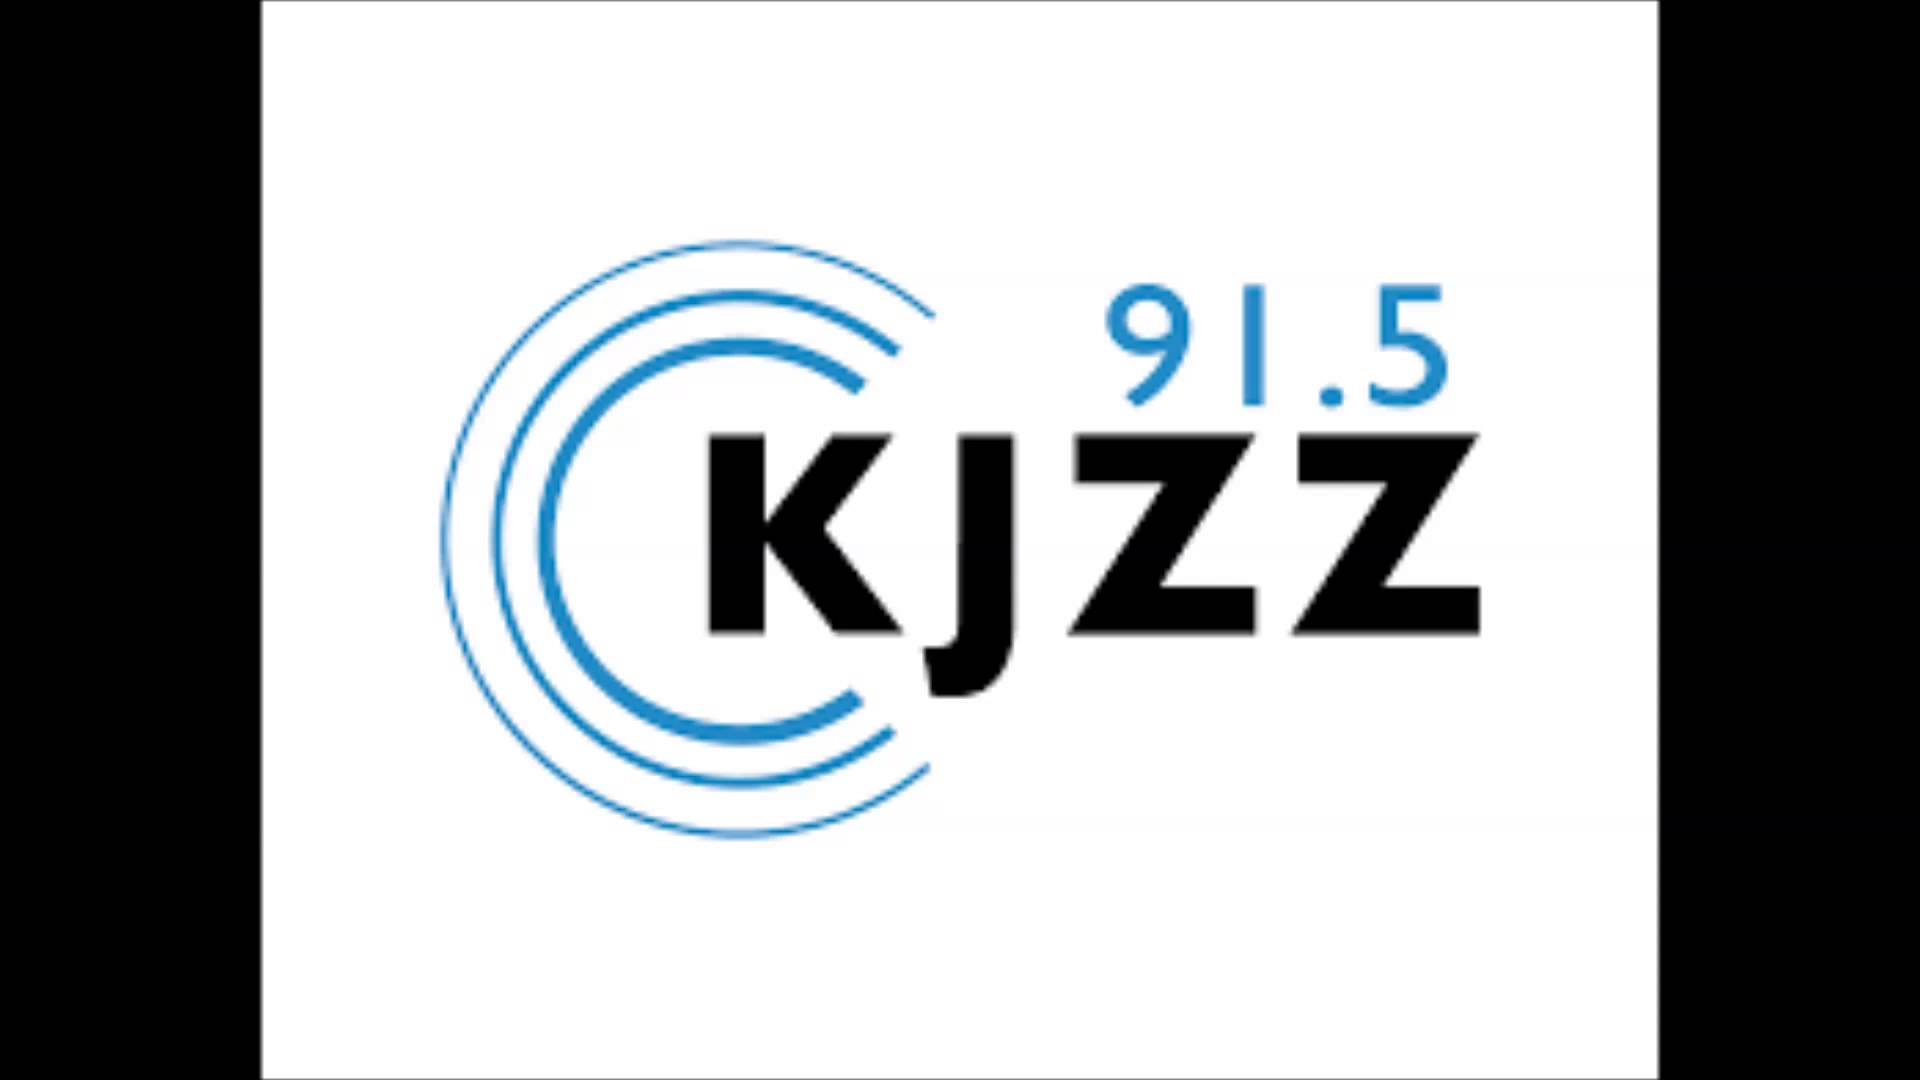 State-Election-Director-talks-about-dark-money-on-KJZZ